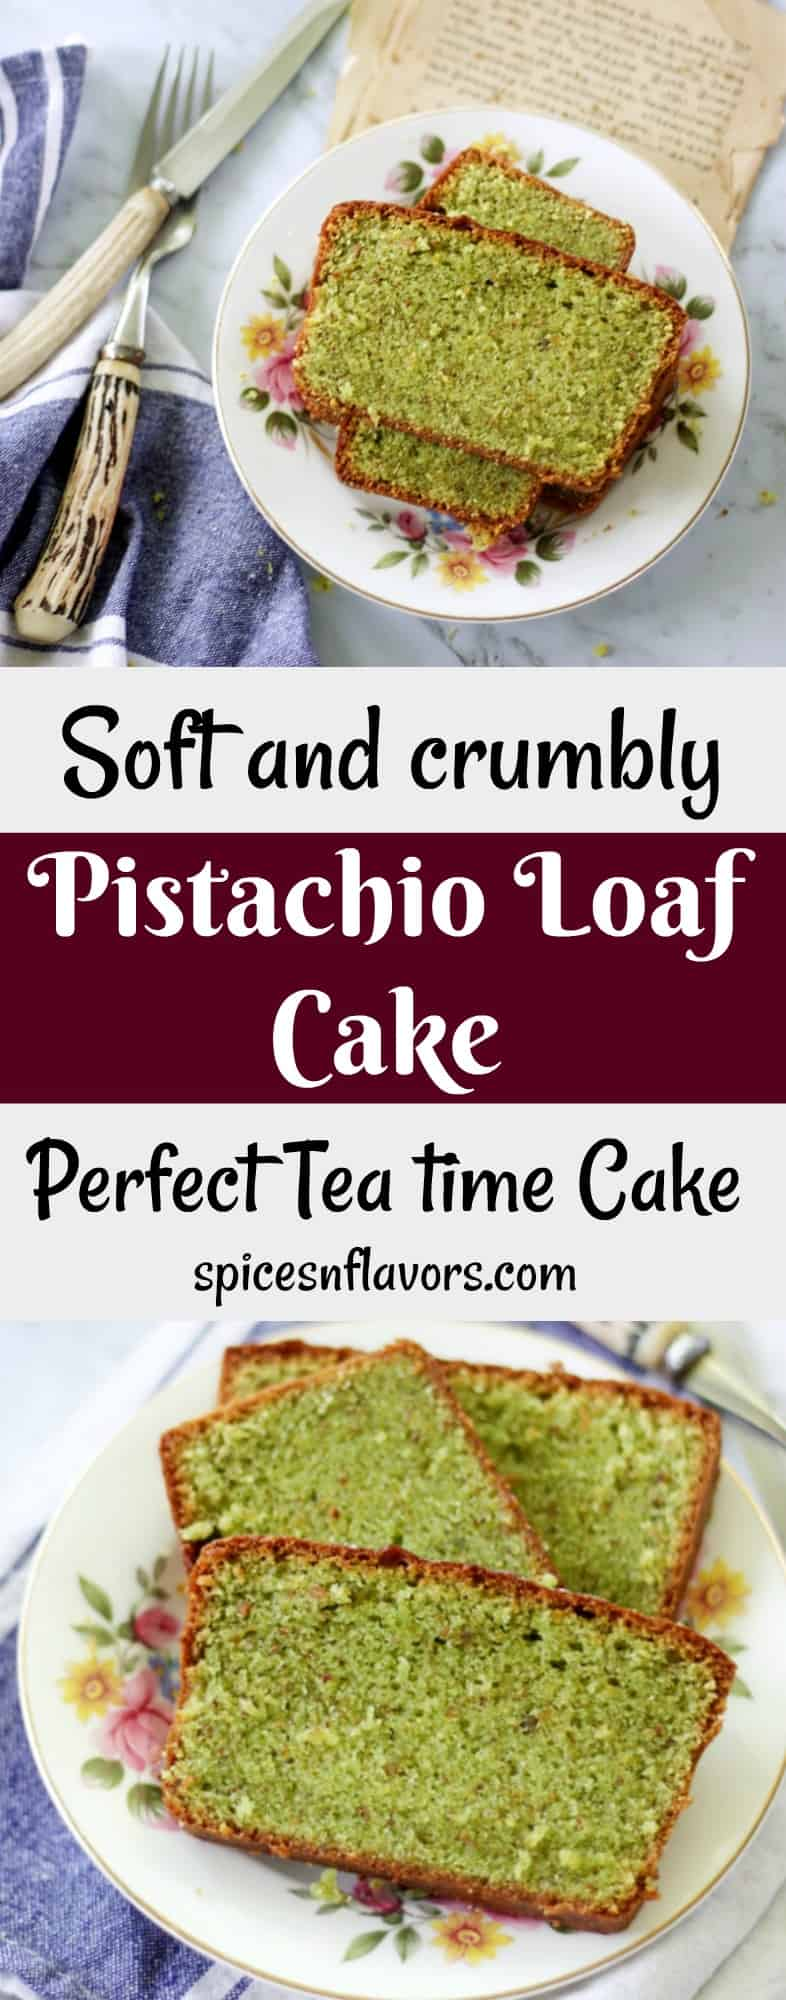 pin image of pistachio loaf cake